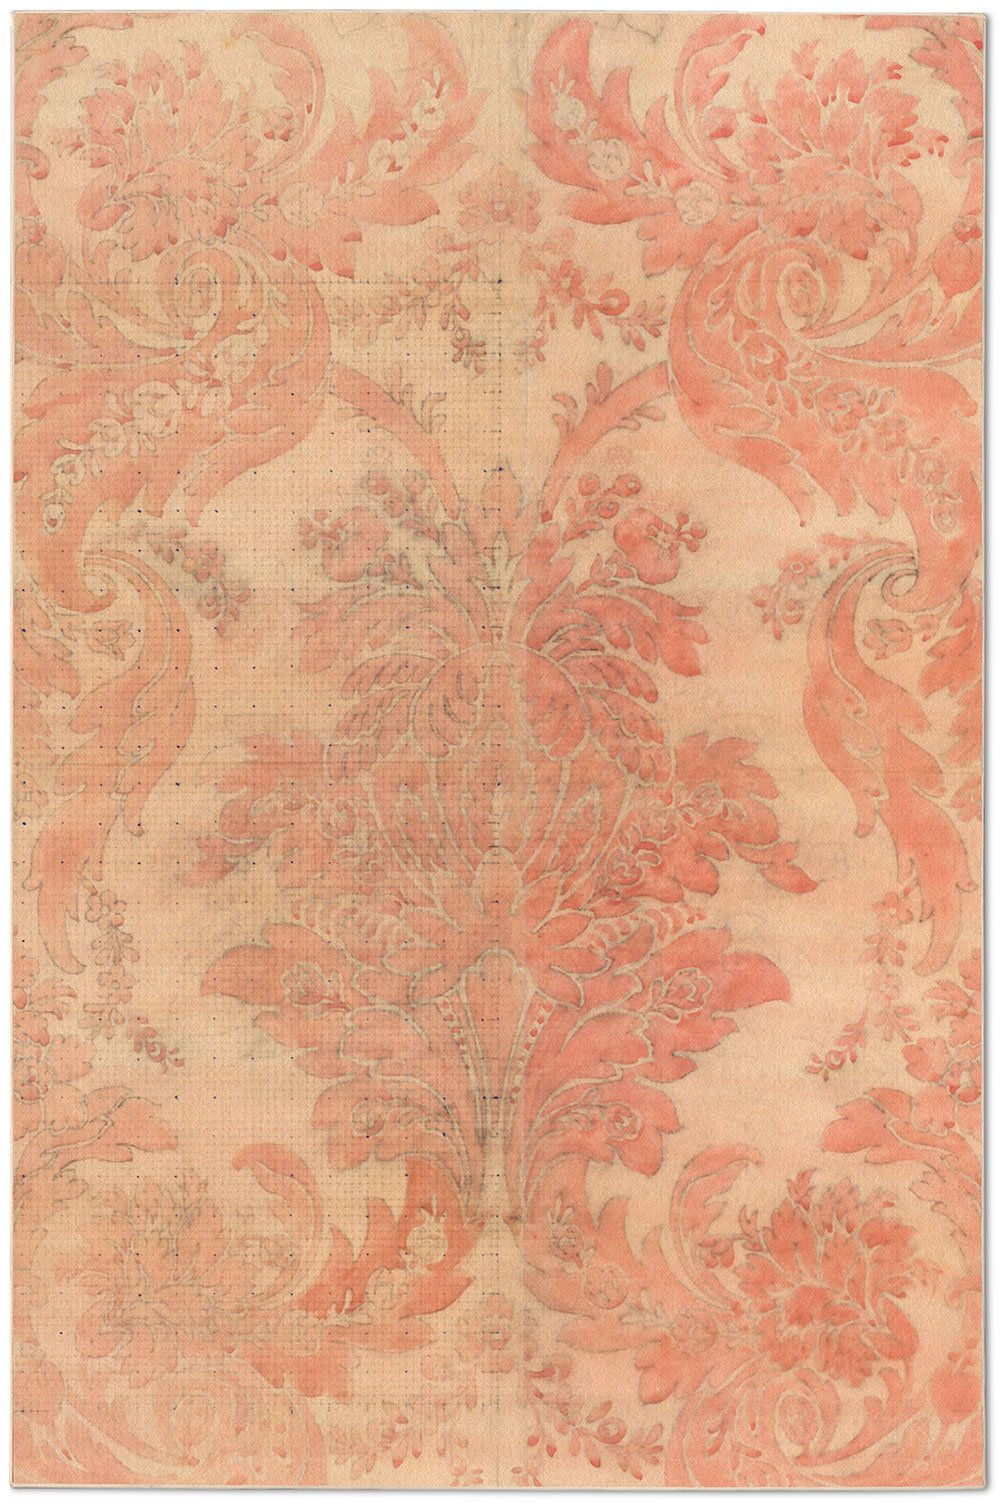 Aubusson Rose Rug by Mr. & Mrs. Vintage